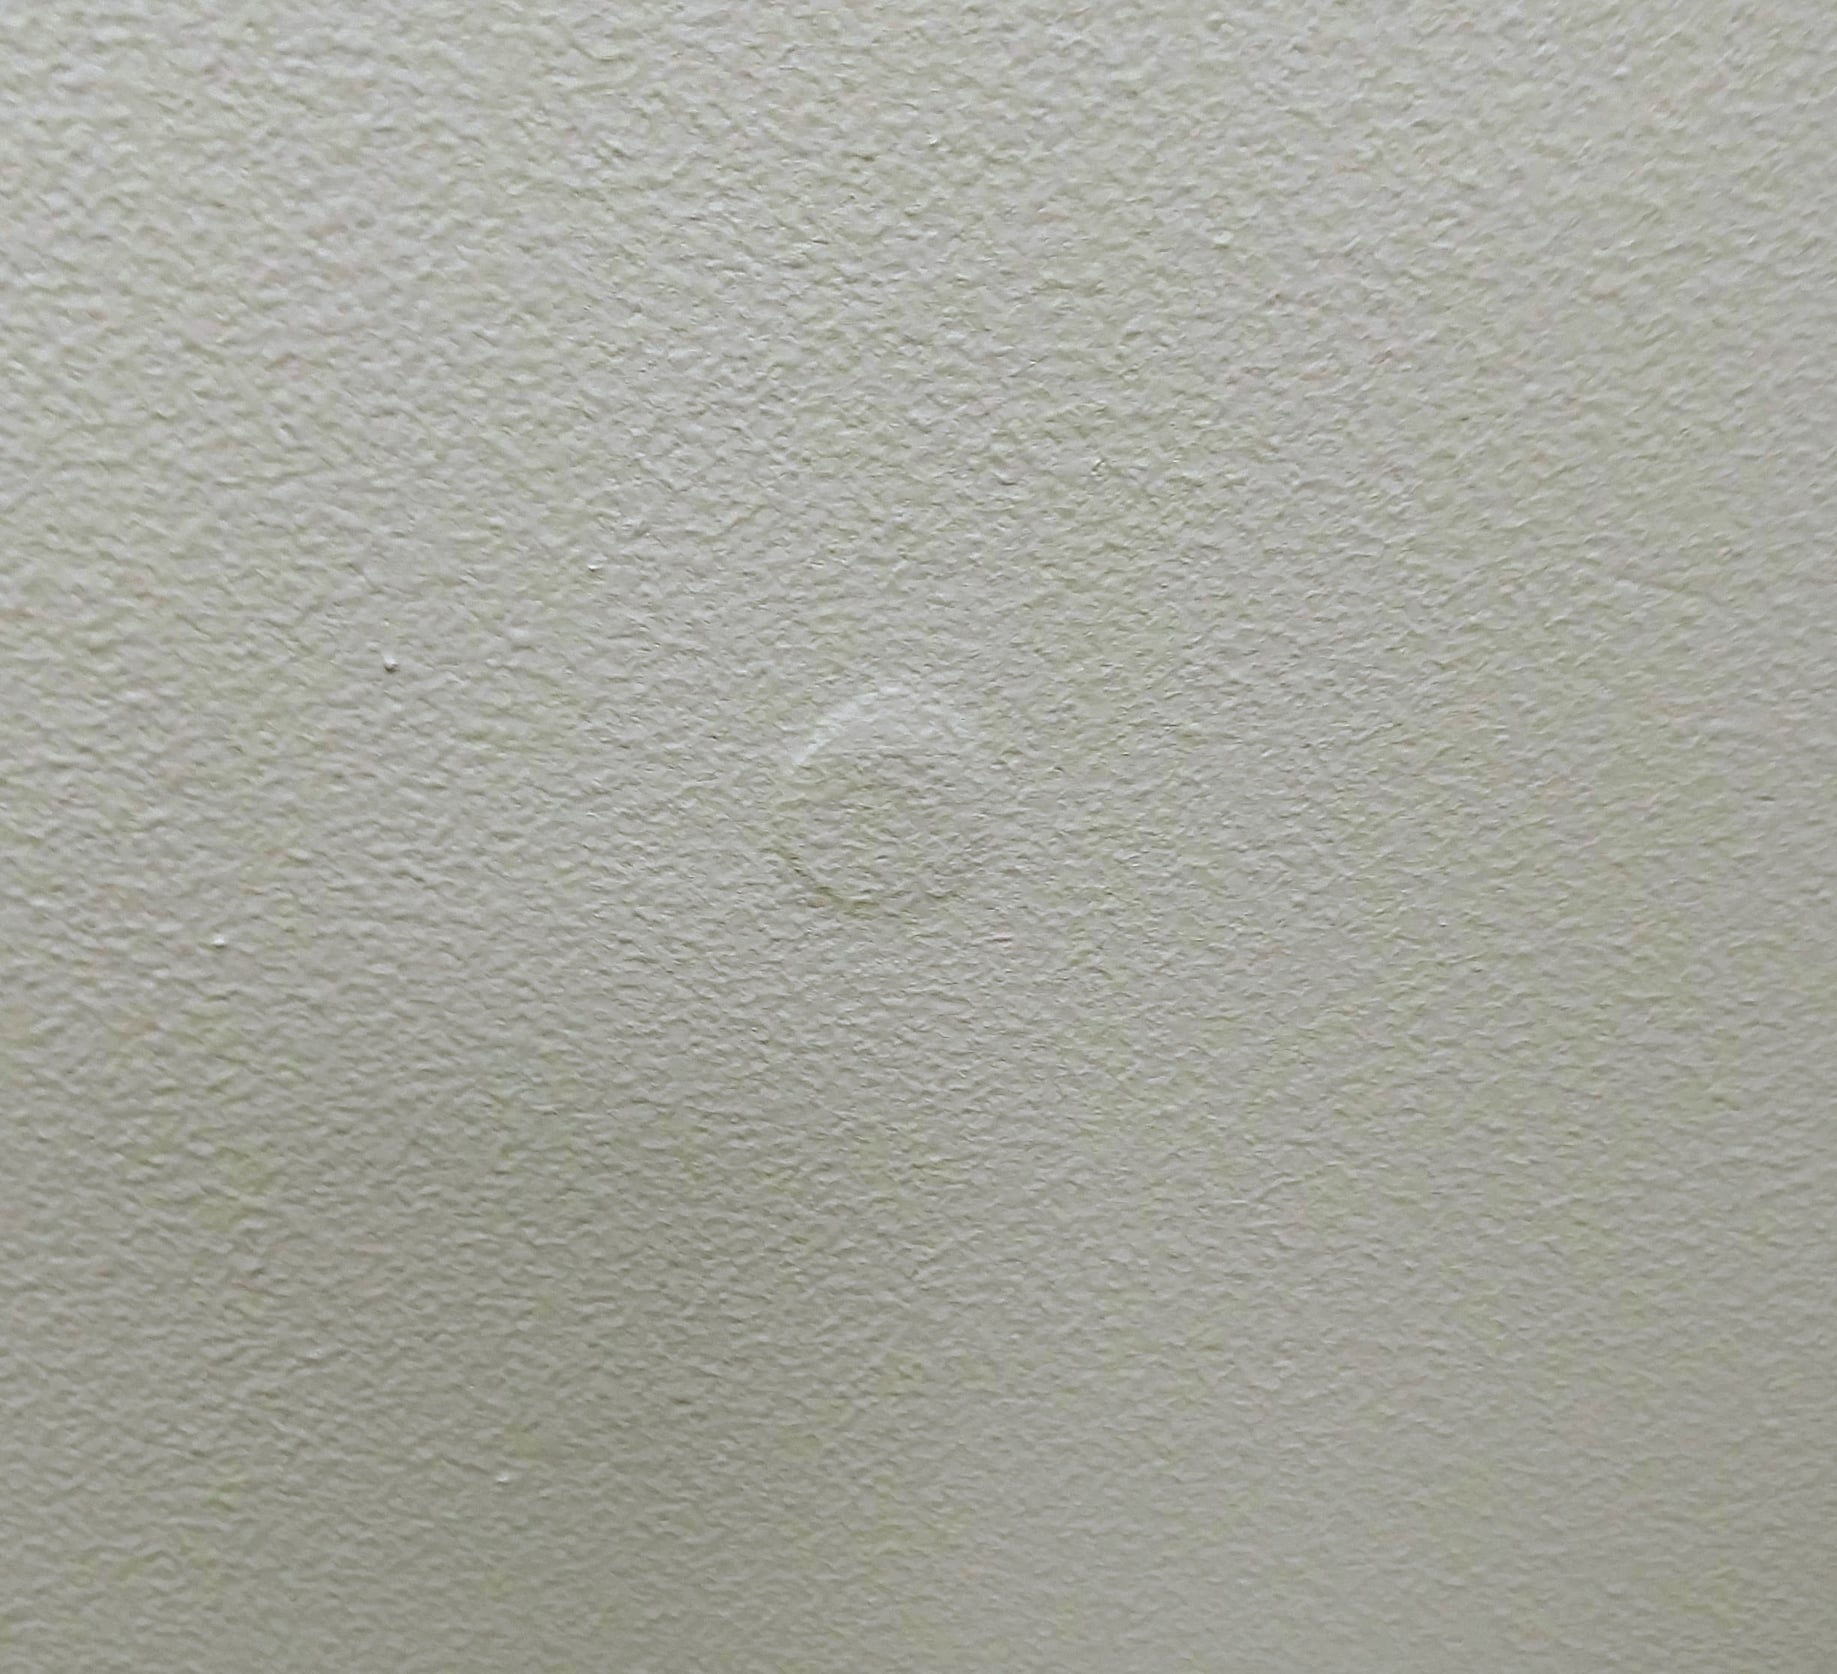 Picture Of A Loose In Drywall Causing The Paint To